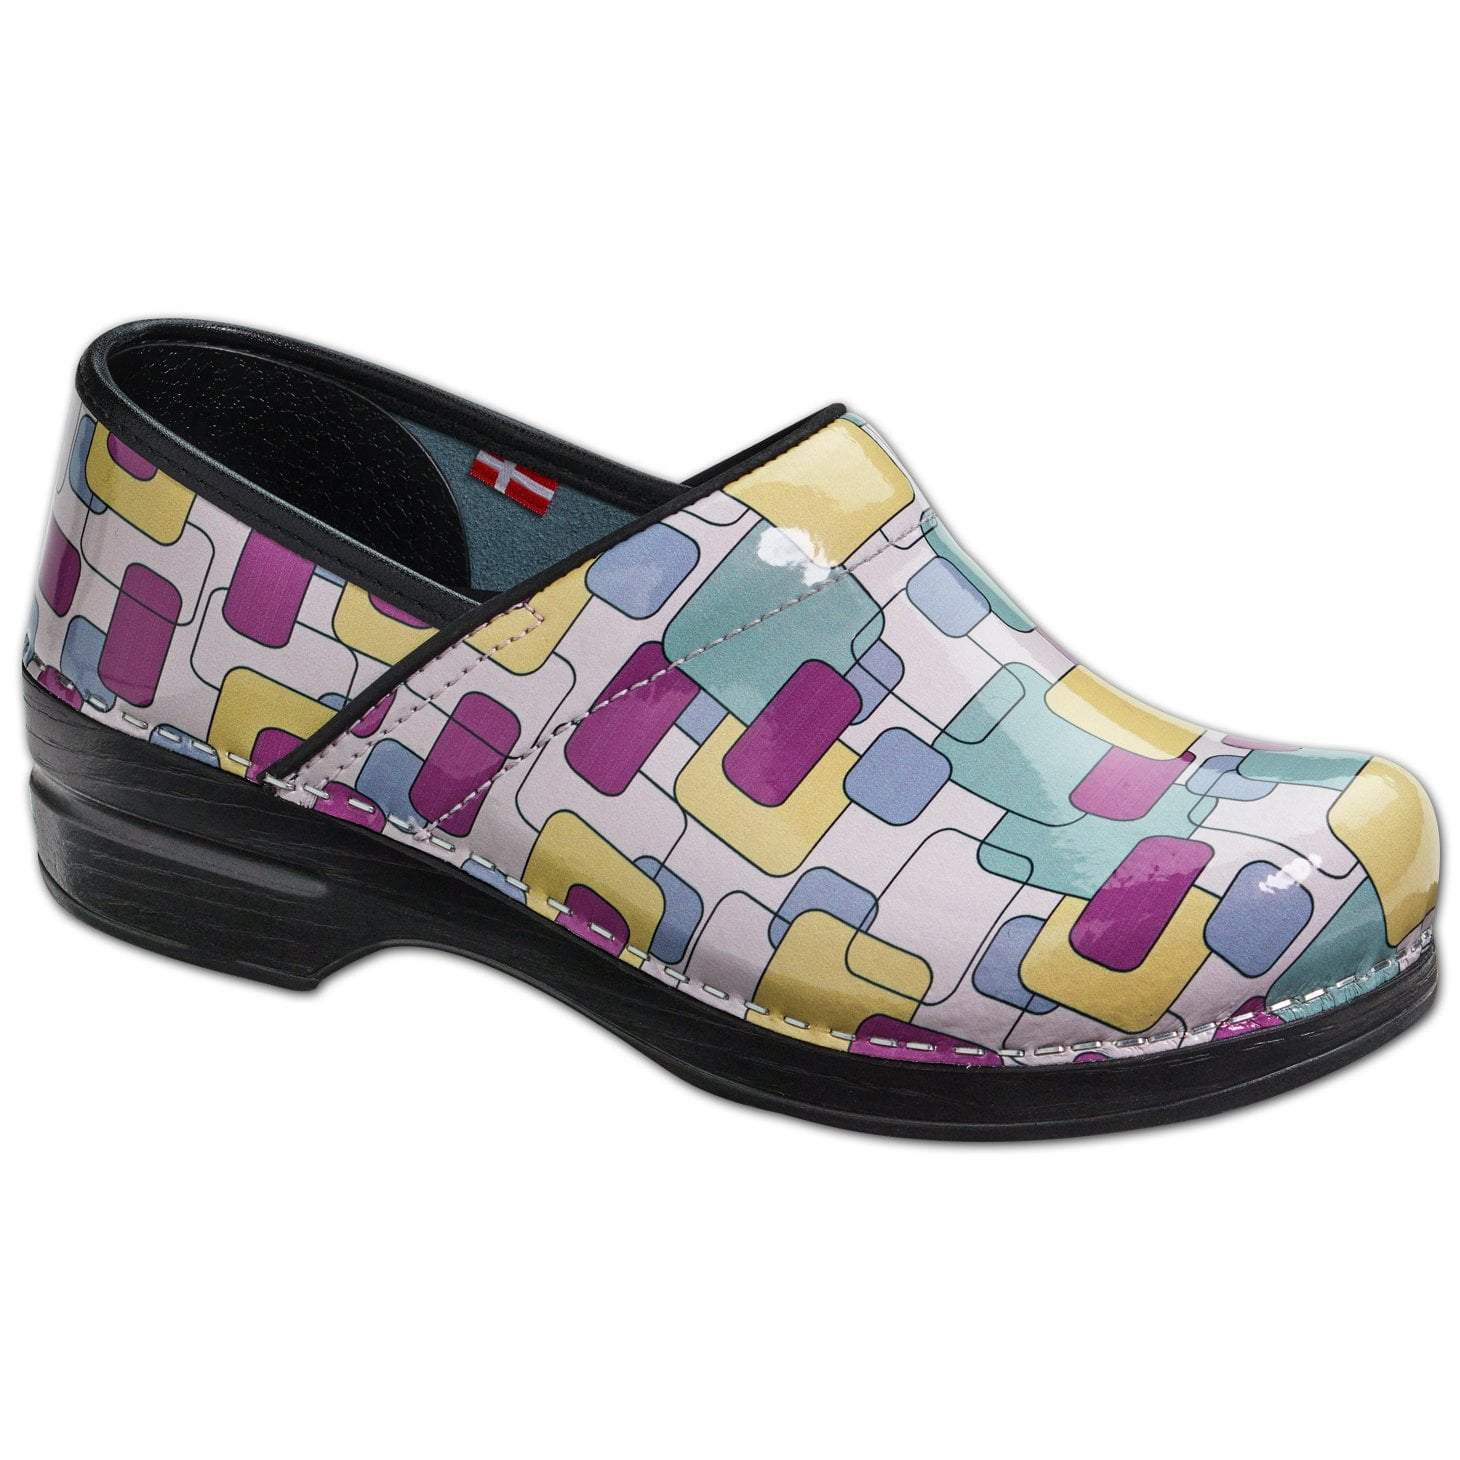 Sanita Puzzle Women's Closed Back Clog